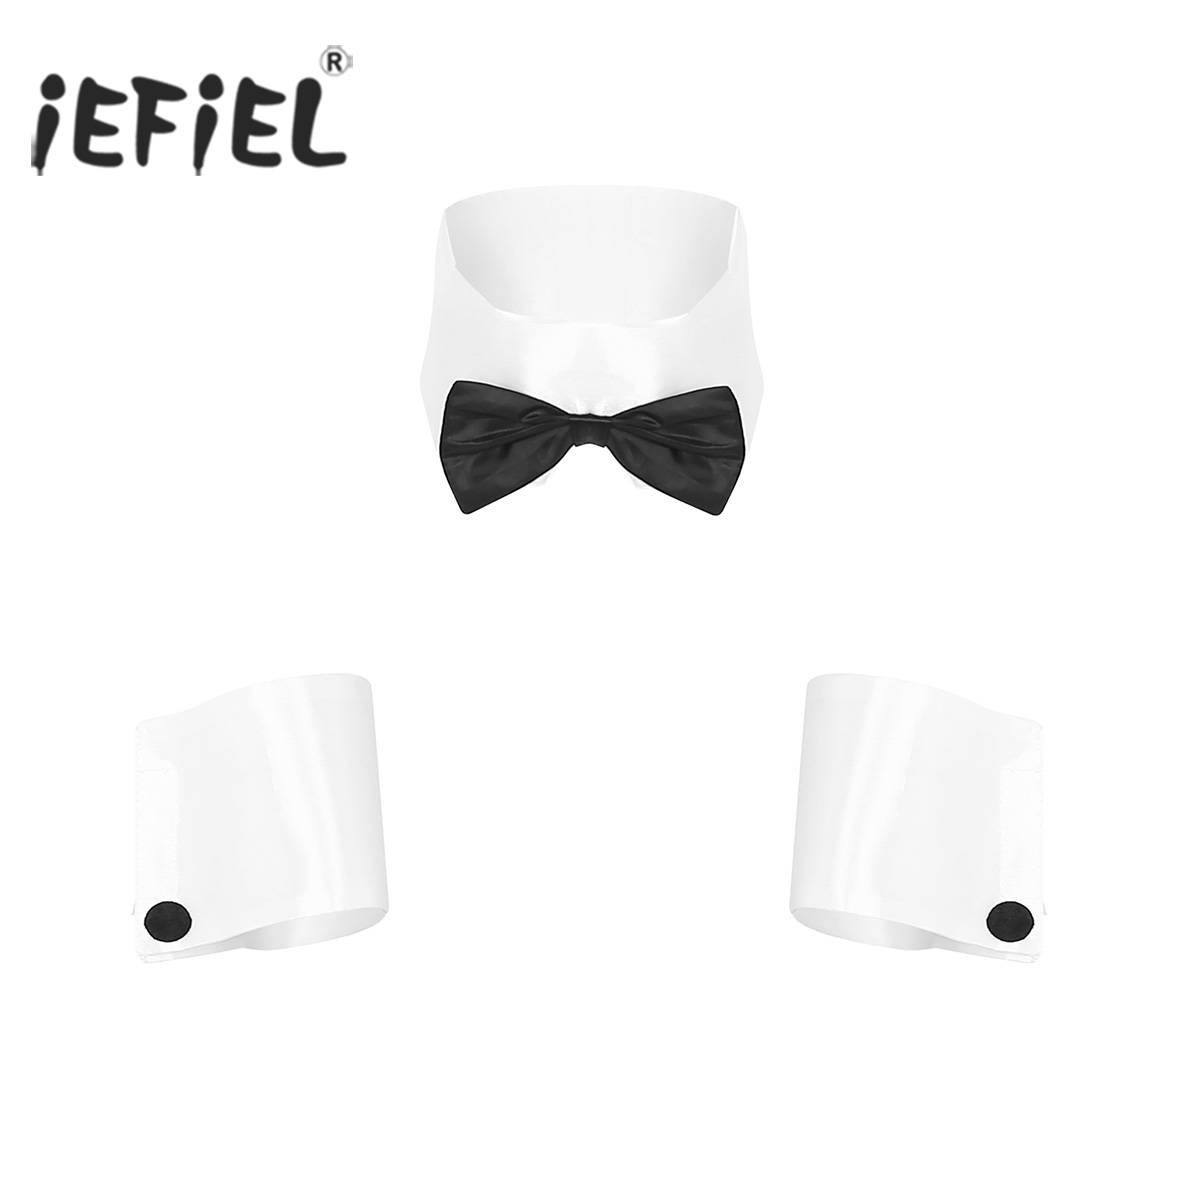 Mens Adults Dancer Costume Playboy Costume Accessories Collar and Cuffs Set for Halloween Single Parties Novelty Accessories